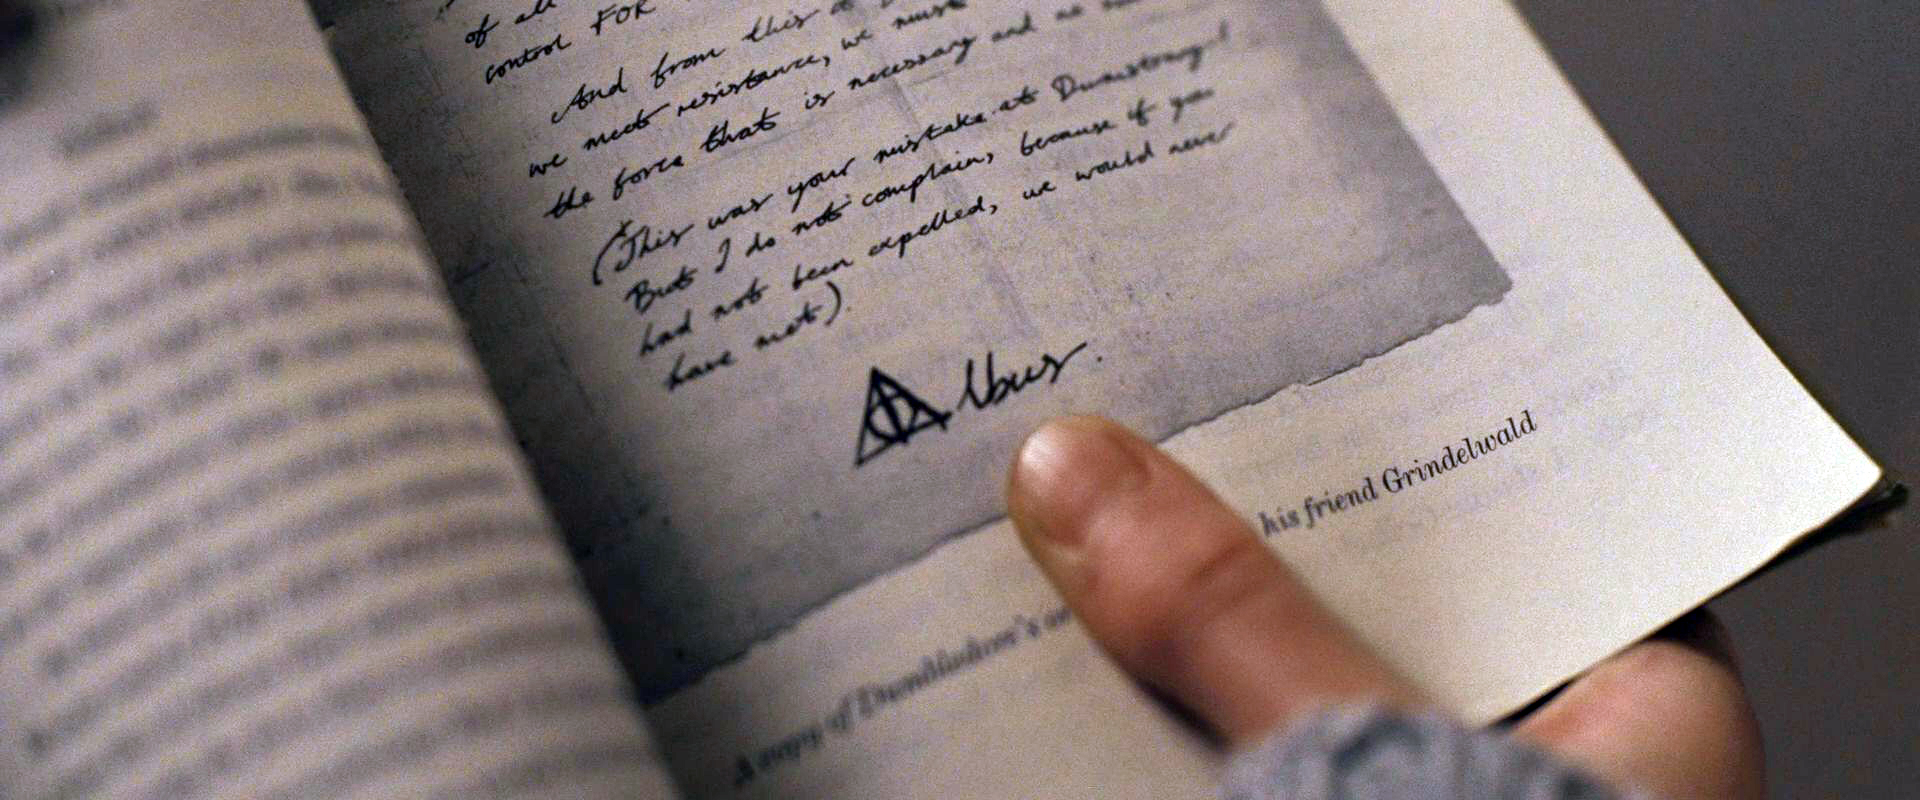 Image dh1 albus dumbledores signature with deathly hallows dh1 albus dumbledores signature with deathly hallows symbolg biocorpaavc Images